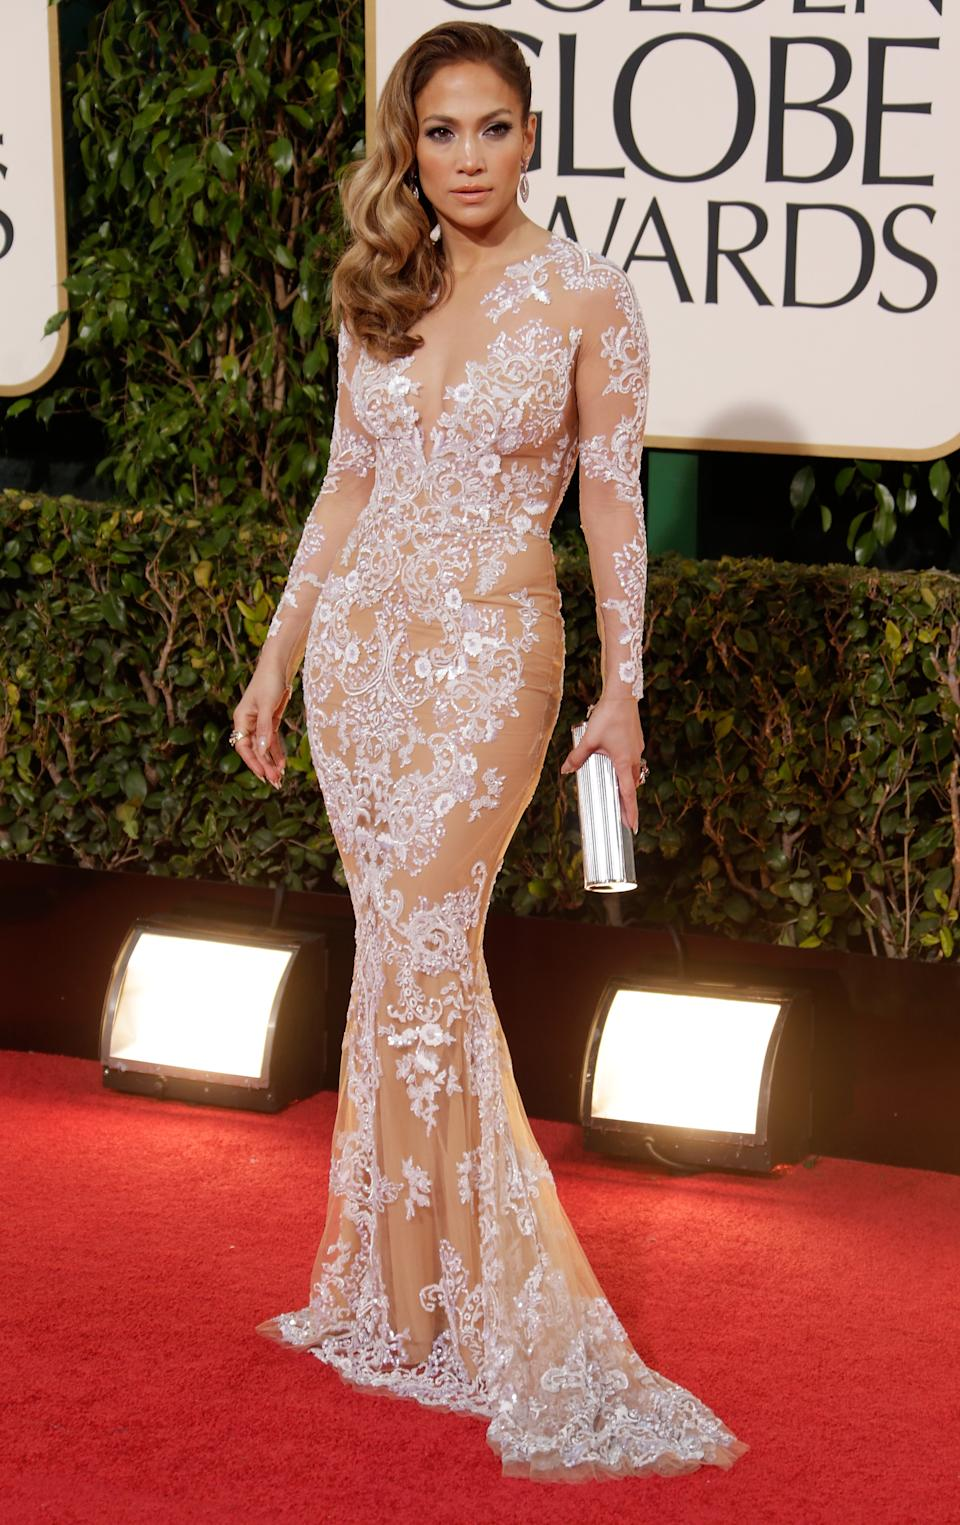 <p>It's virtually impossible for Jennifer Lopez not to be one of the best dressed people in any room. However this nude and white lace Zuhair Murad in 2013 dress proves that Lopez is and will always be a red carpet stand-out.<em> (Image via Getty Images)</em></p>